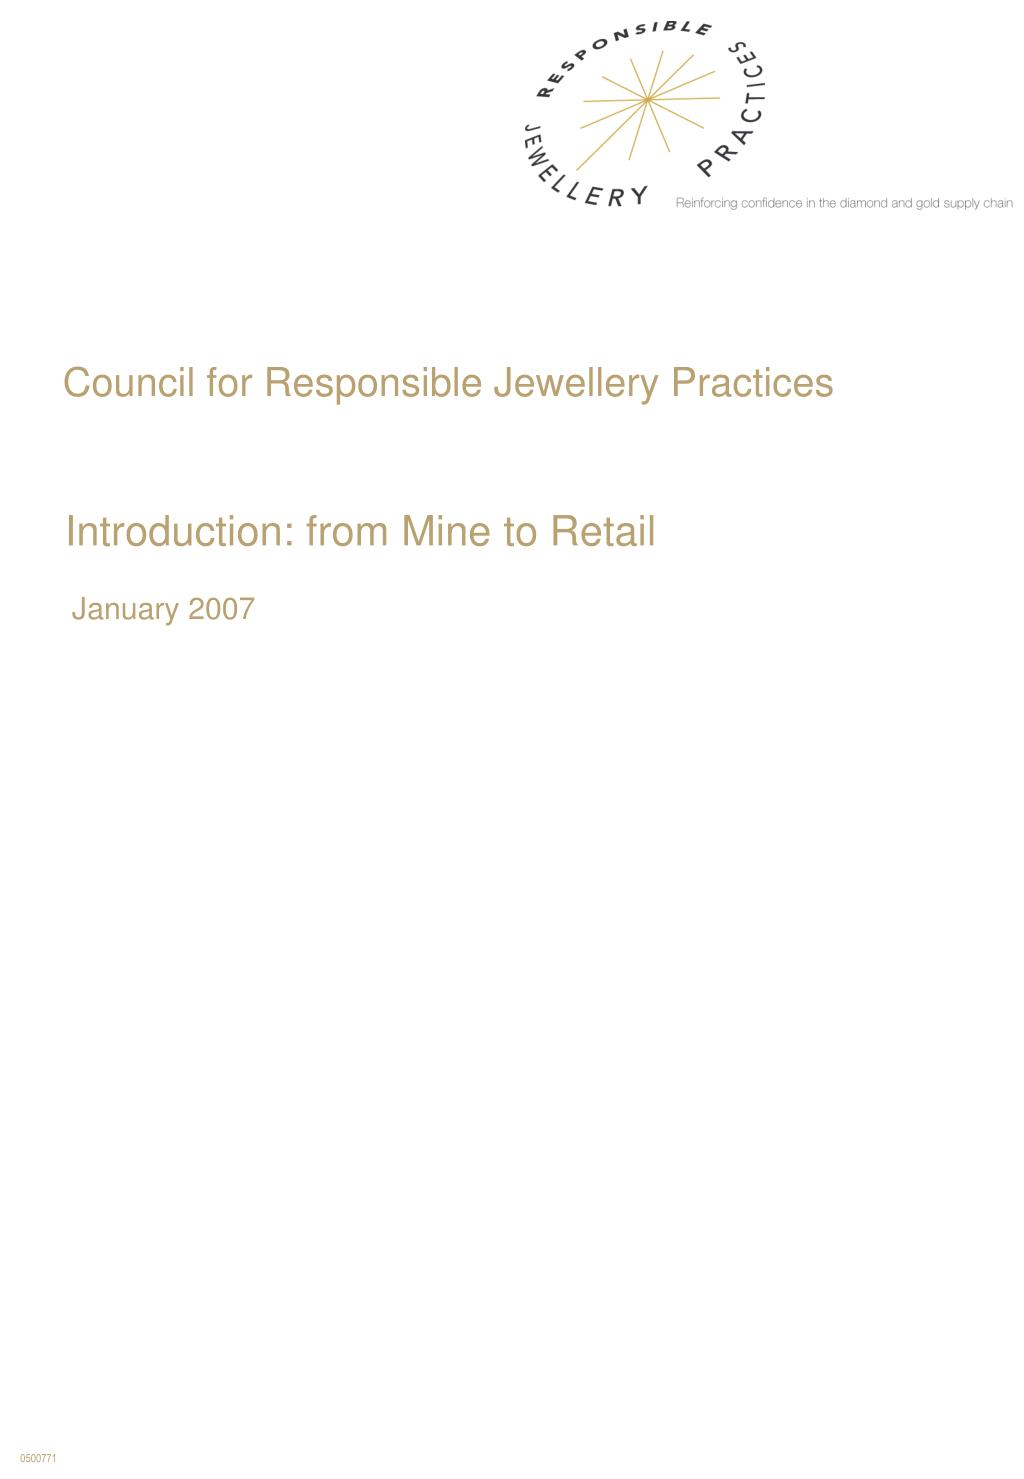 Council for Responsible Jewellery Practices